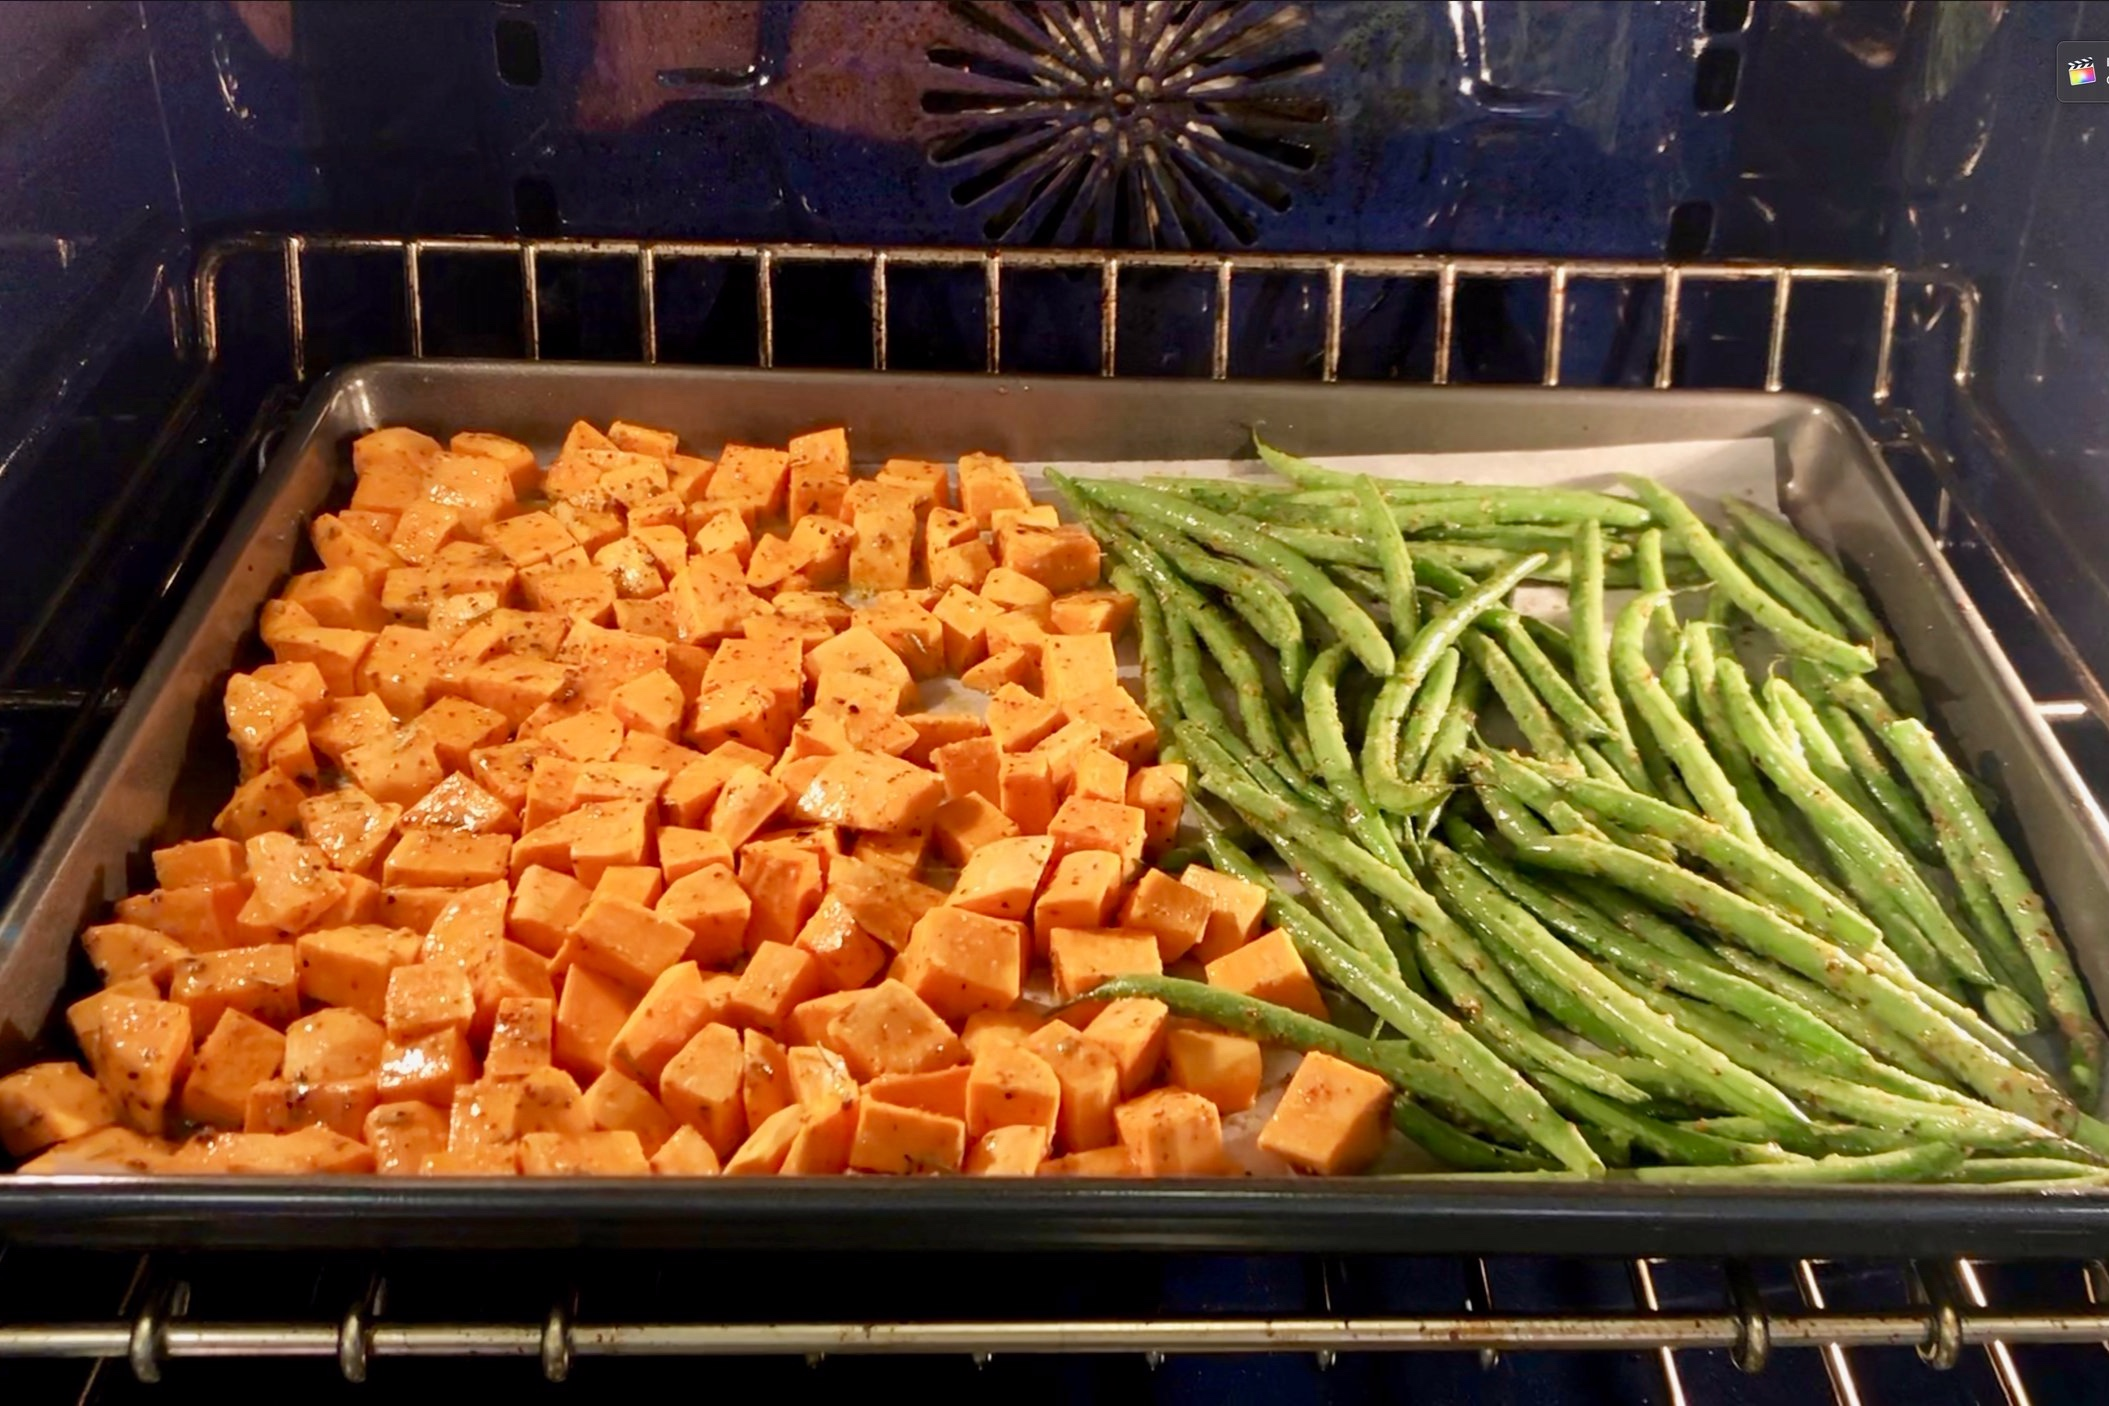 6. While veggies are cooking remove the chicken from refrigerator and allow to come to room temperature. -